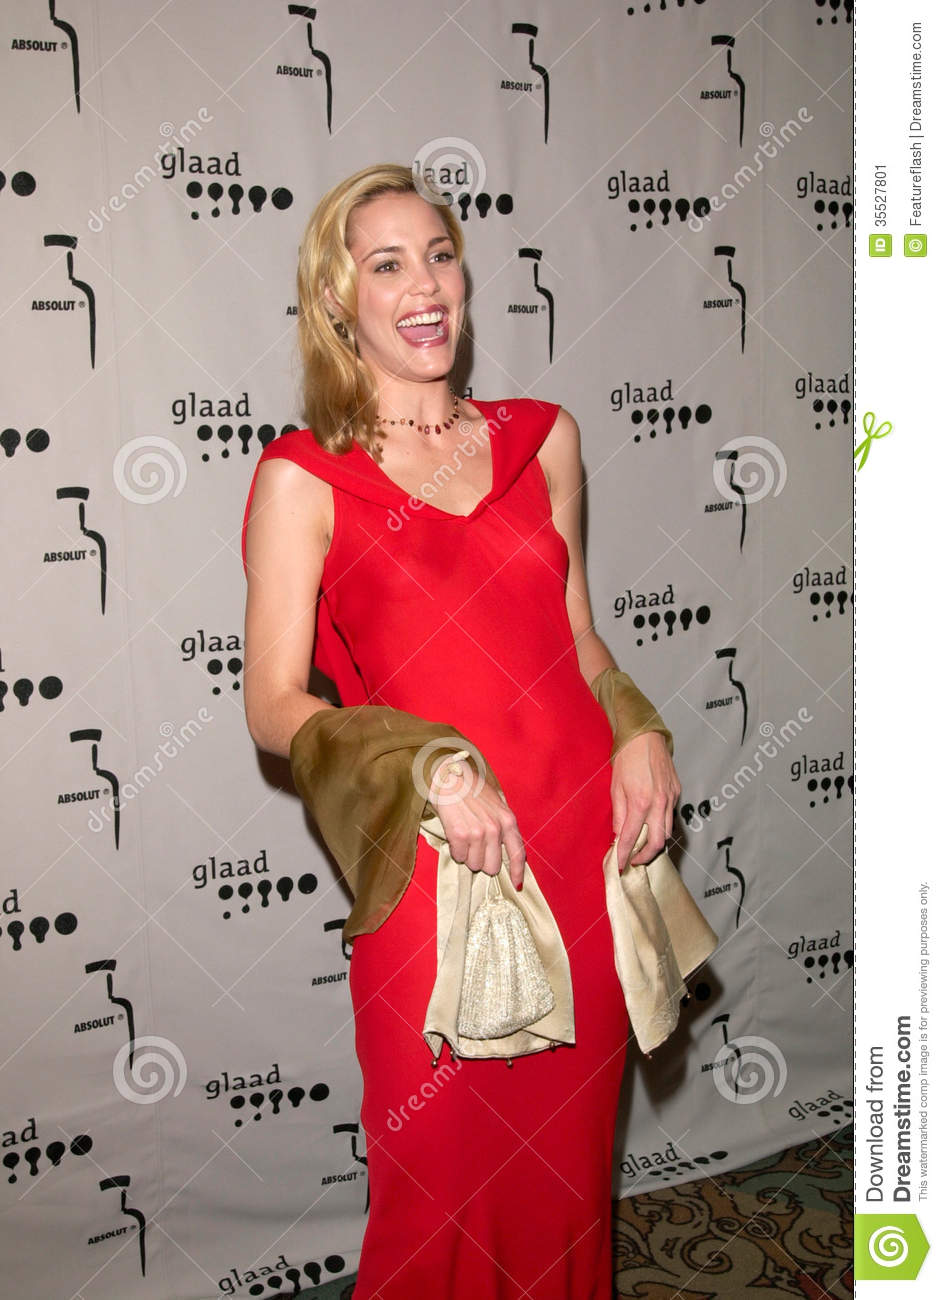 Actress LESLIE BIBB at the Gay & Lesbian Alliance Against Defamation ...: dreamstime.com/stock-image-leslie-bibb-apr-actress-gay-lesbian...